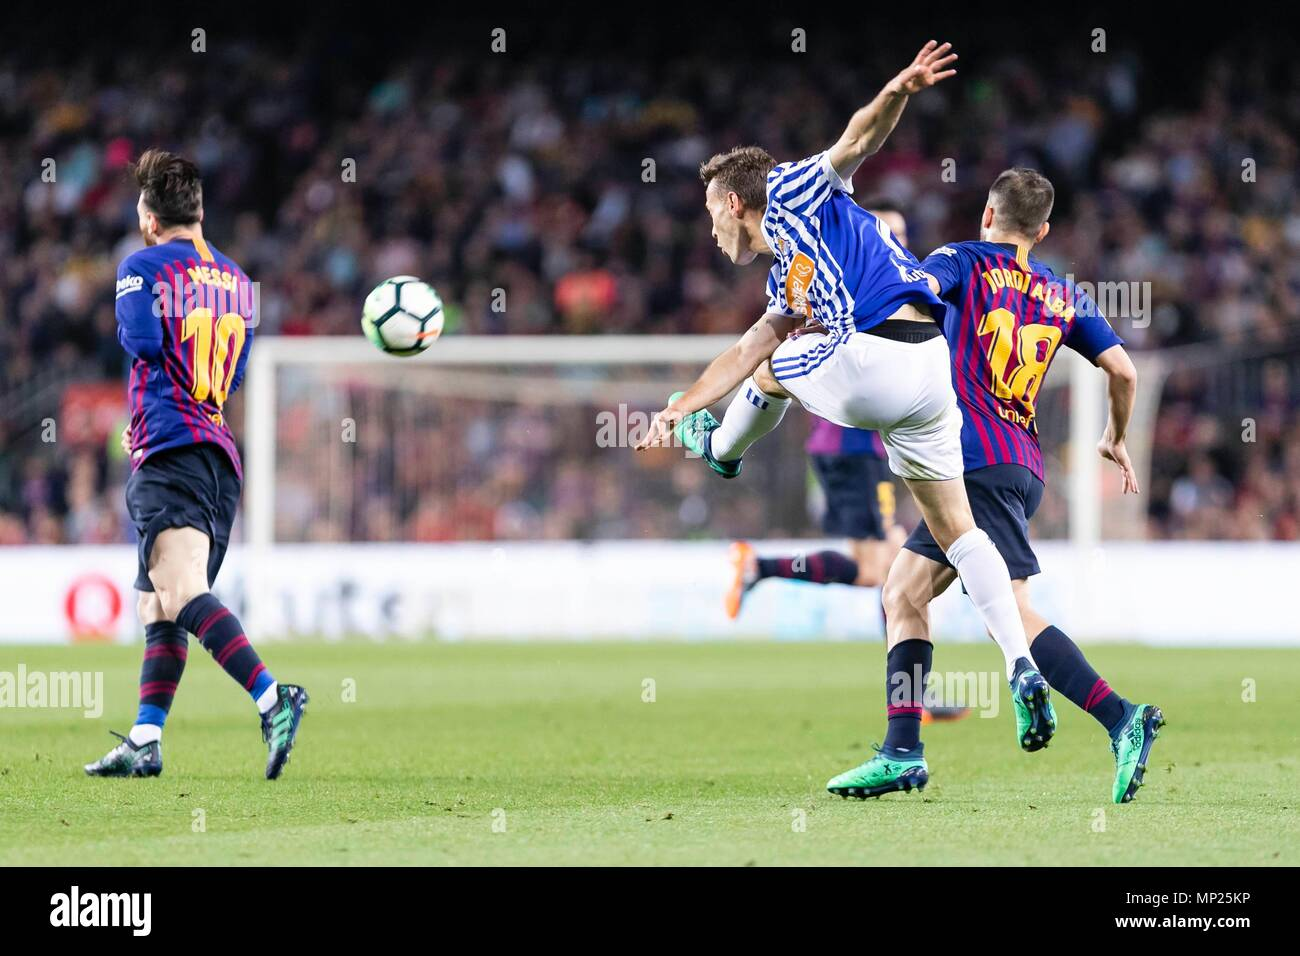 SPAIN - 20th of May: Real Sociedad forward Juanmi (7) during the match between FC Barcelona against Real Sociedad for the round 38 of the Liga Santander, played at Camp Nou Stadium on 20th May 2018 in Barcelona, Spain. (Credit: Mikel Trigueros /Urbanandsport / Cordon Press)  Cordon Press - Stock Image